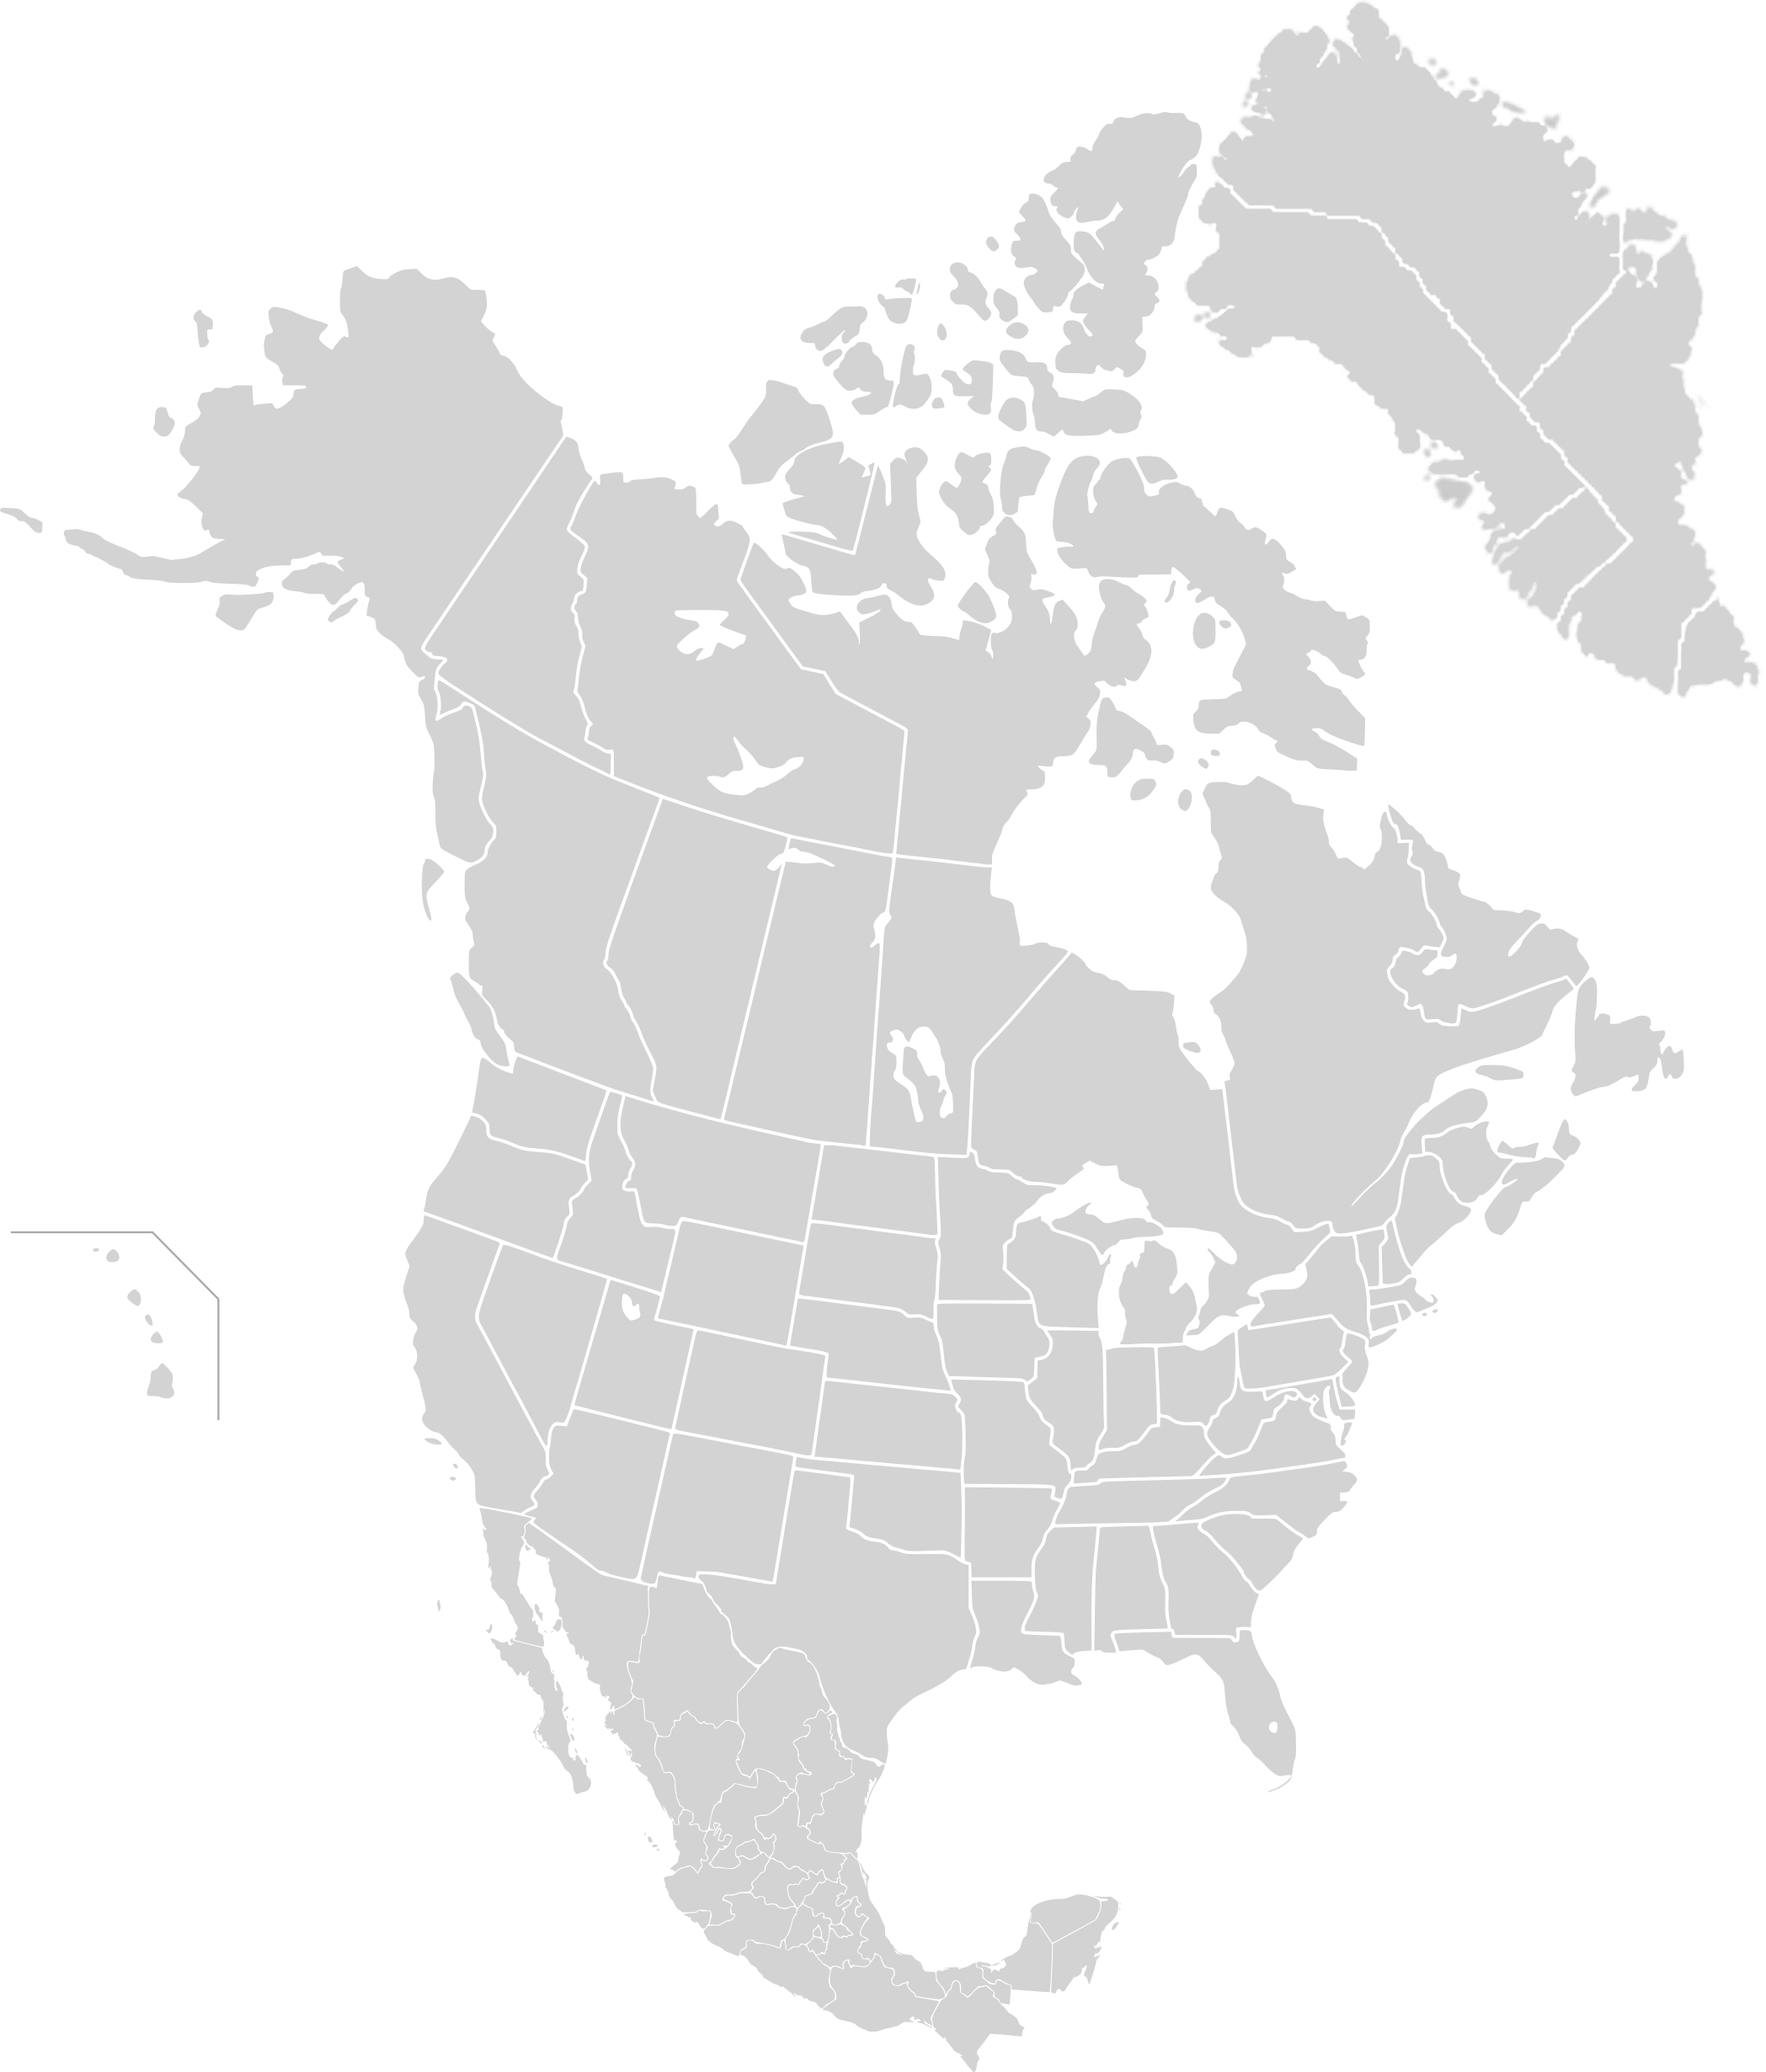 FileNorth America subnational division mappng Wikimedia Commons